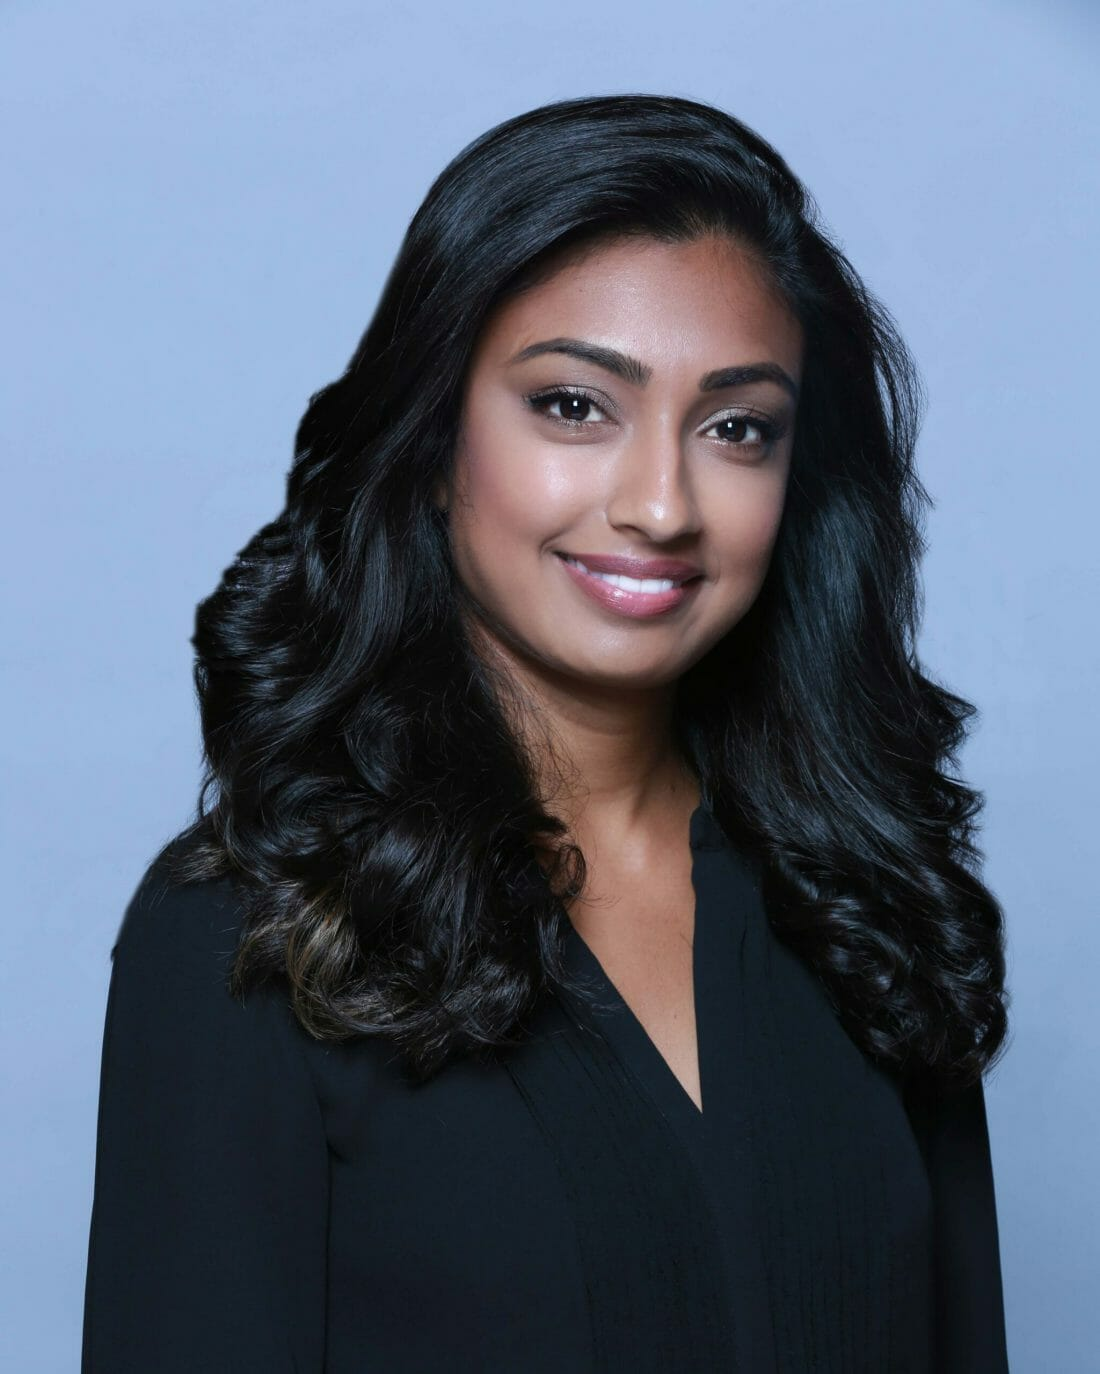 headshot photography of Indian Woman in black blouse